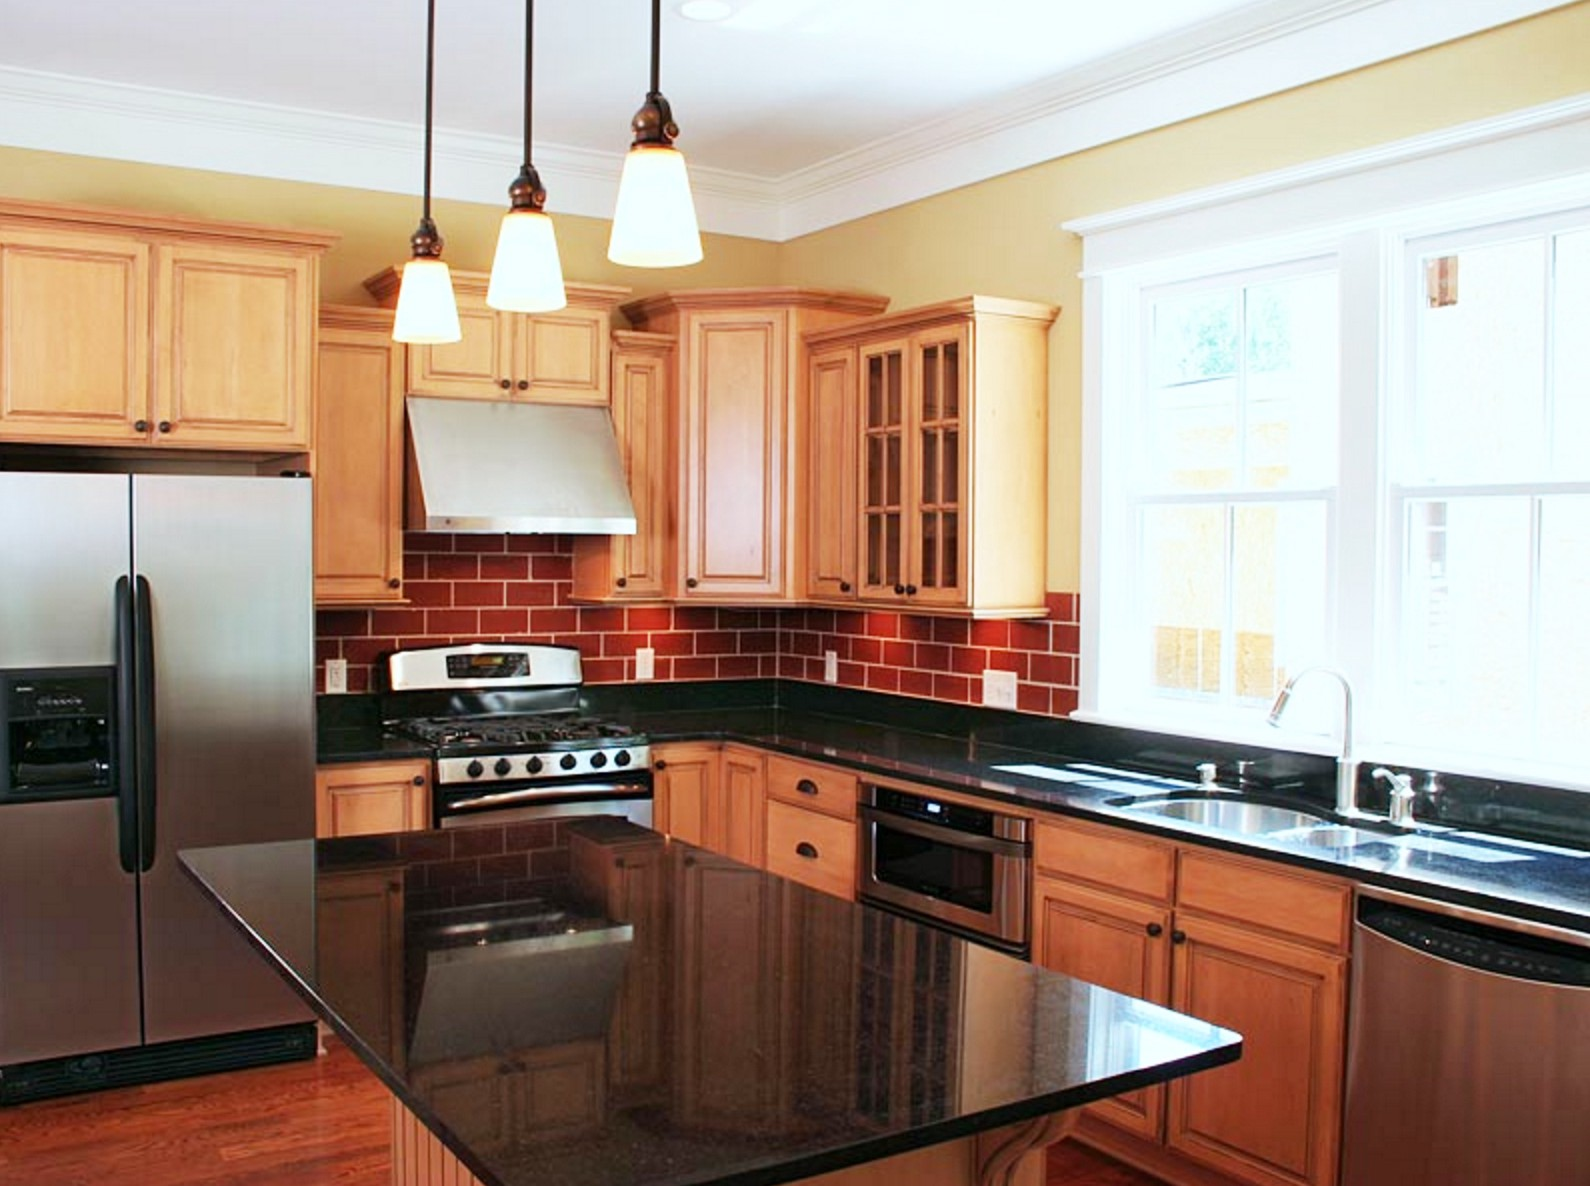 & 5 Reasons Why Remodeling Your Kitchen is a Good Idea